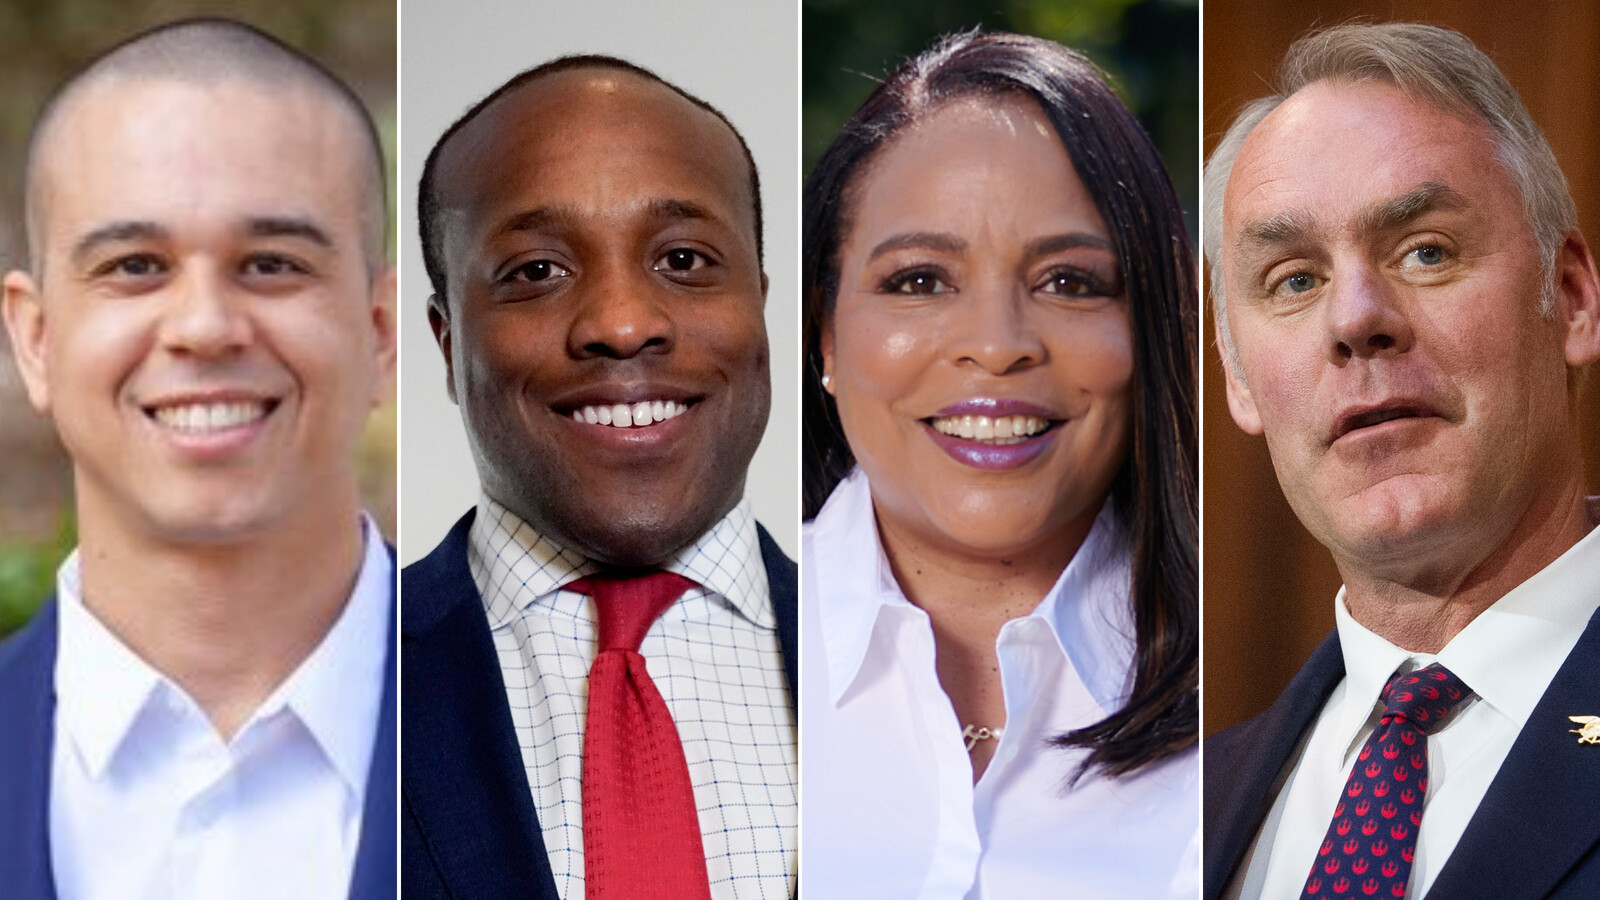 House candidates declare campaigns for districts that don't exist yet amid redistricting delays